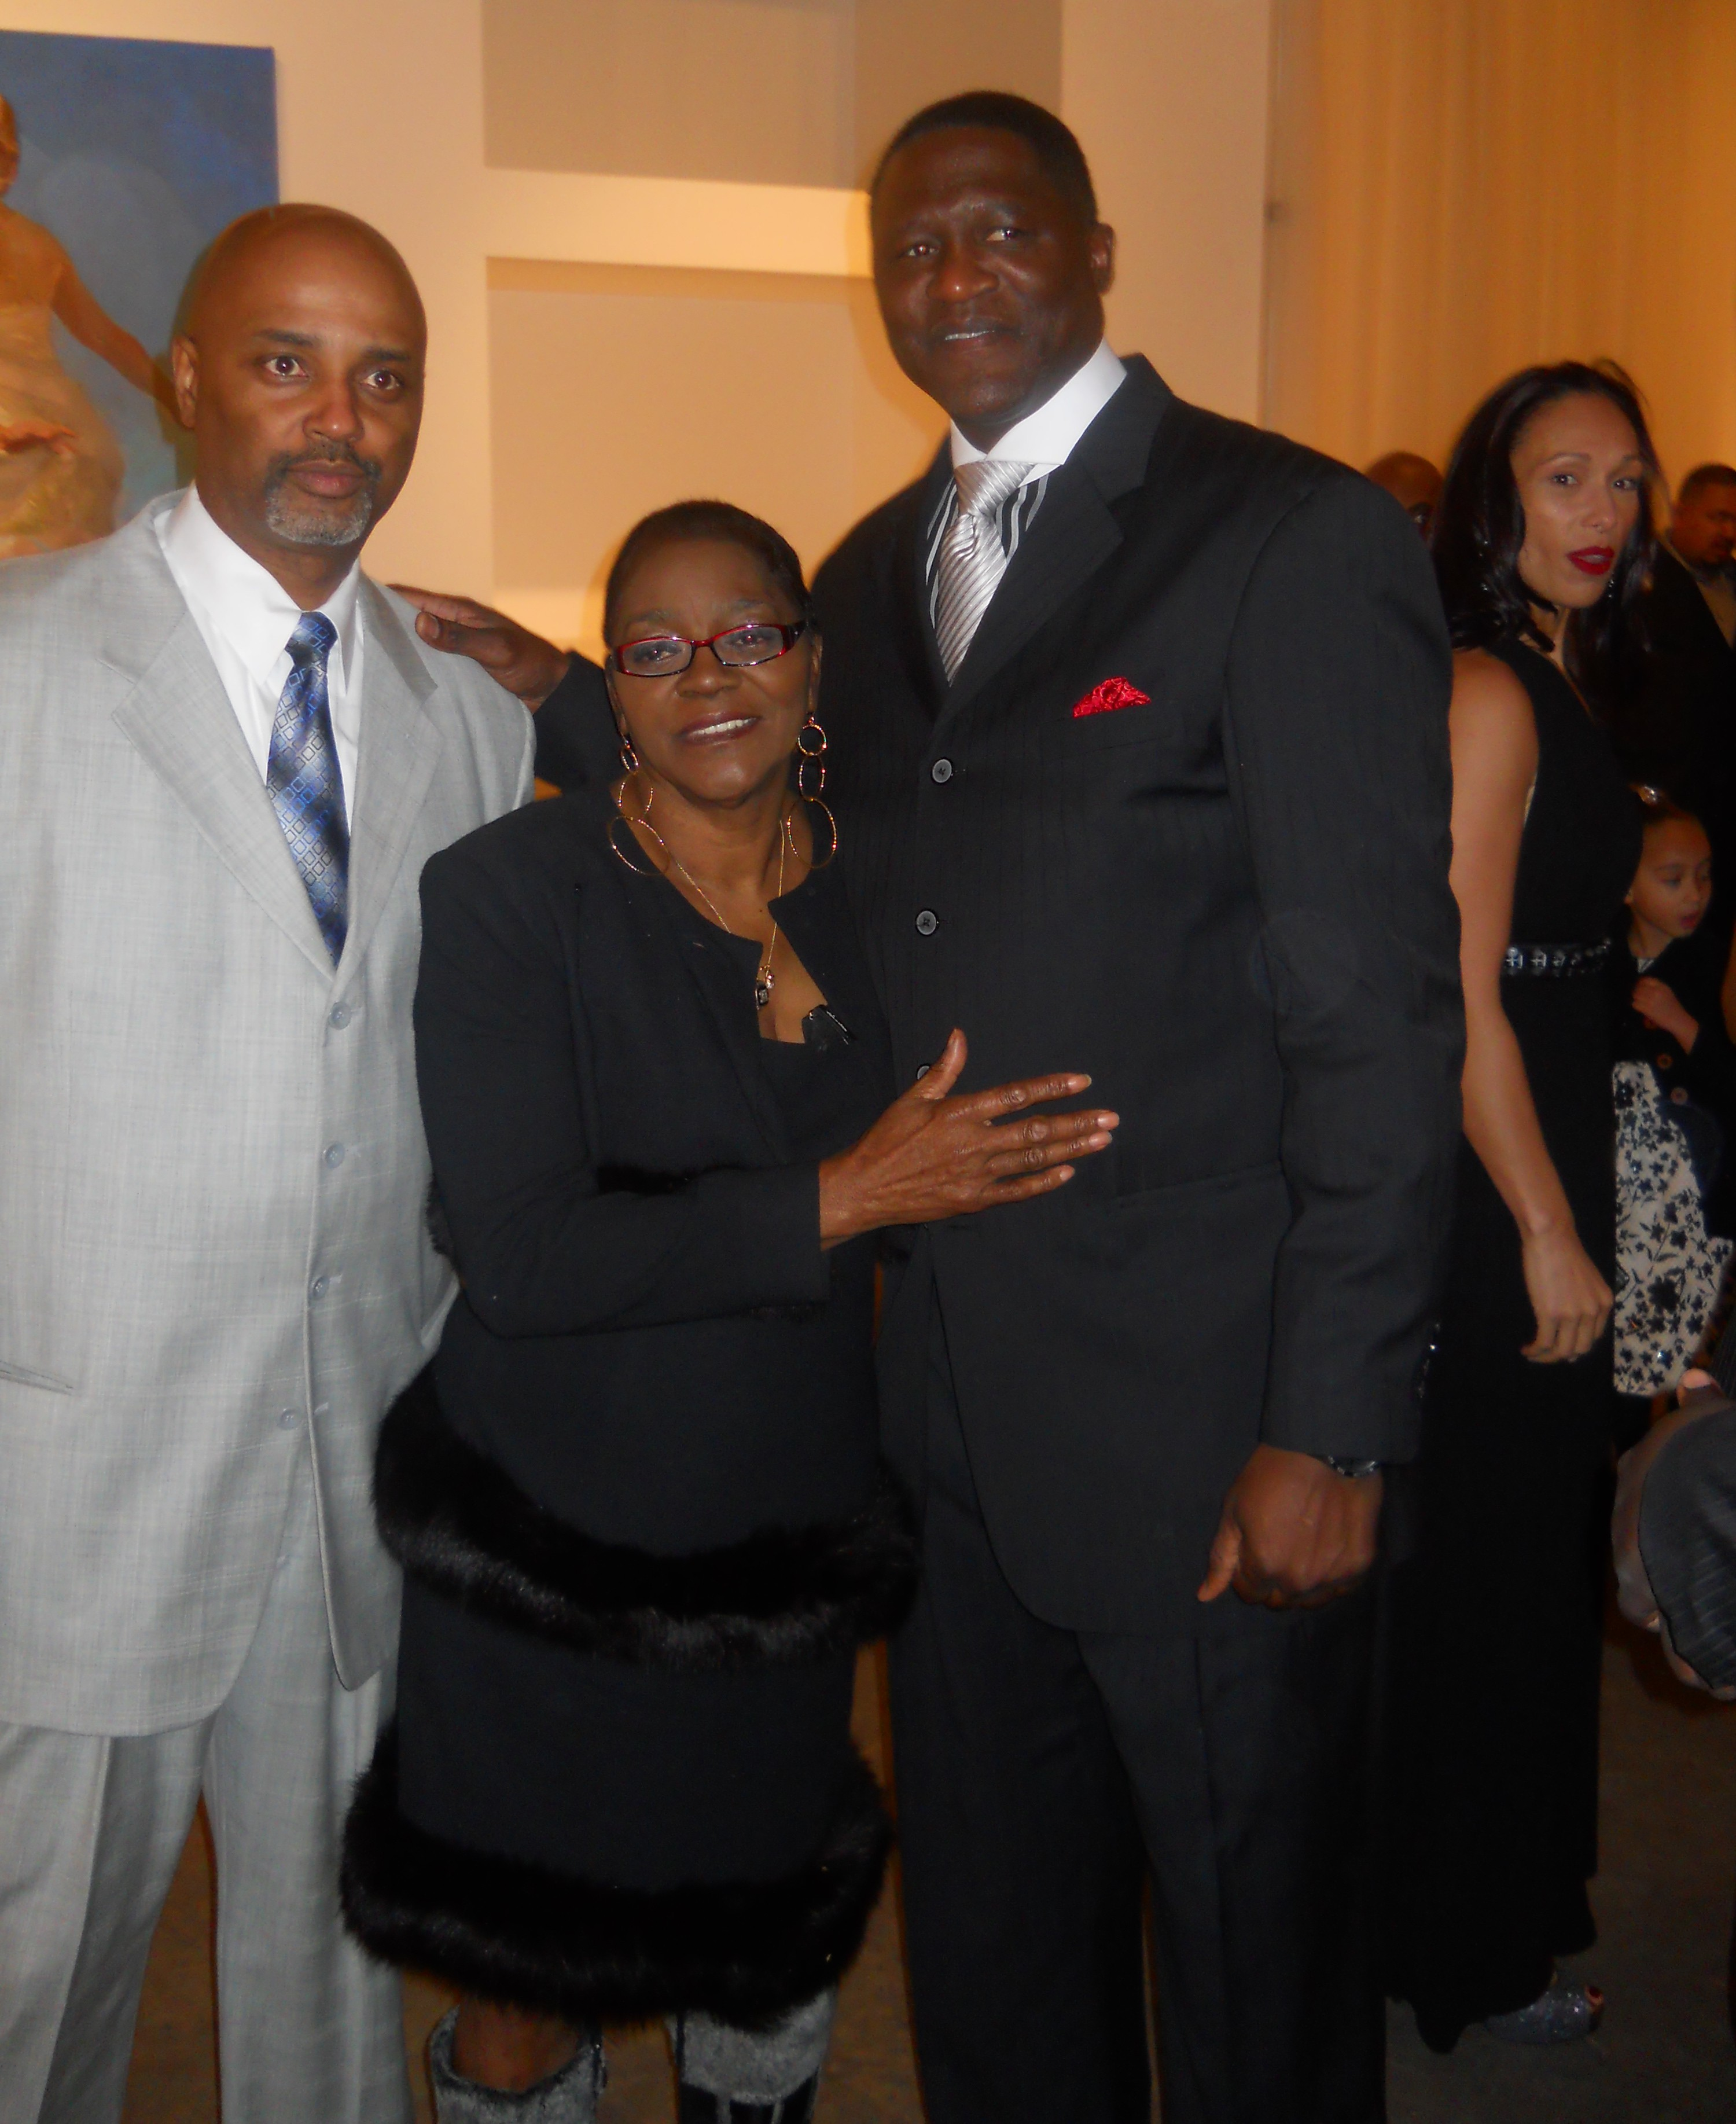 Former NBA Icon Dominique Wilkins Hosts LEGENDARY AWARDS